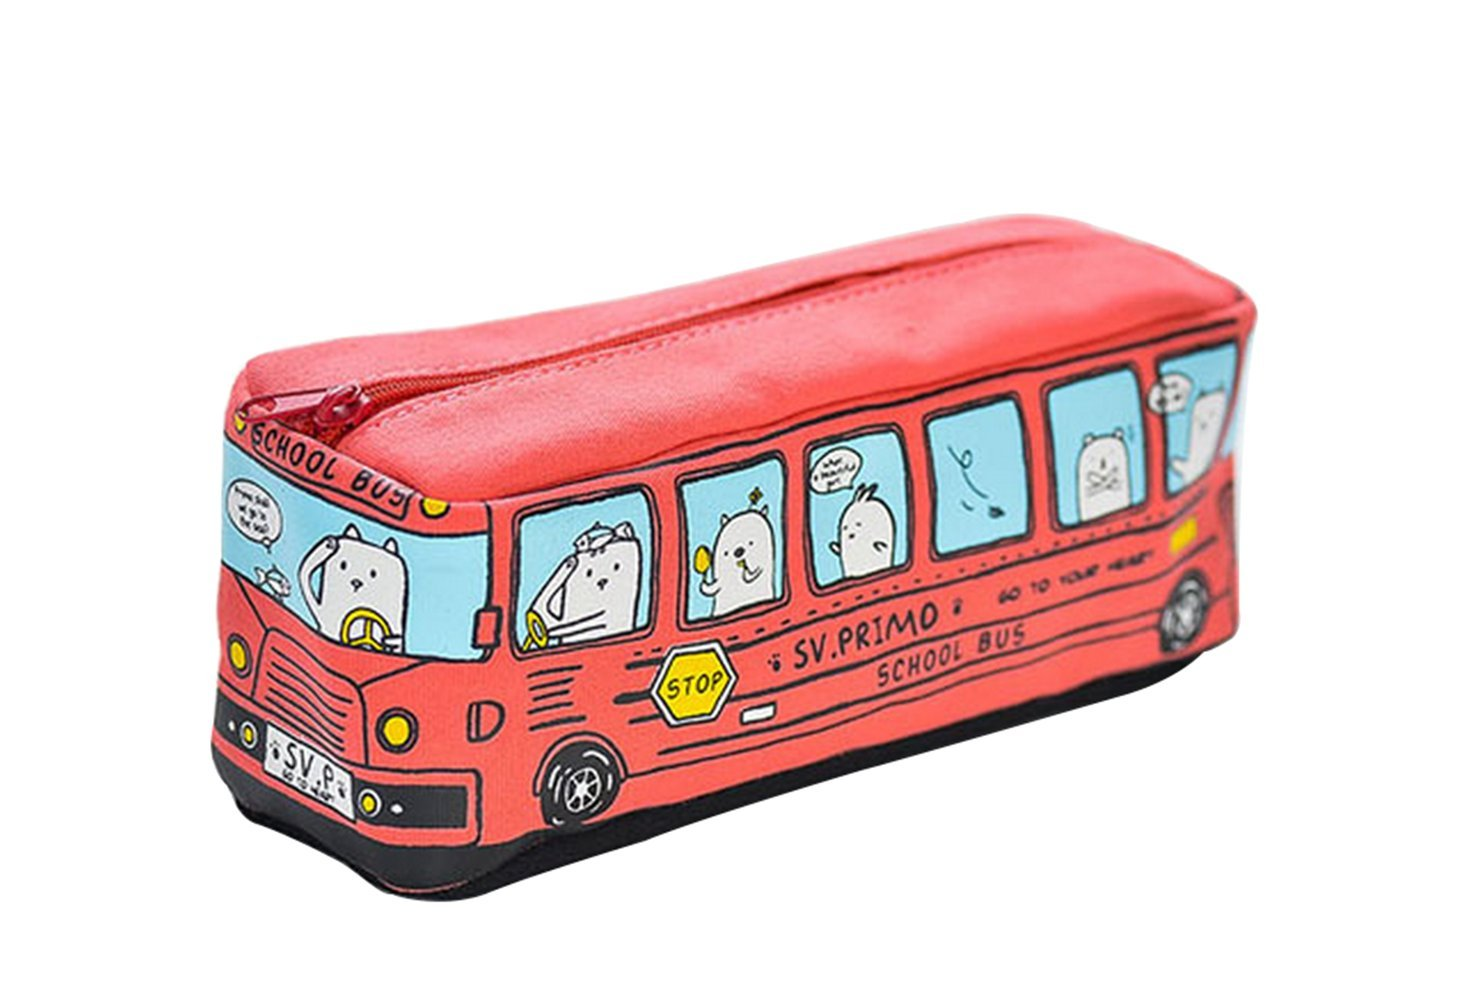 Freedi Cute Creative School Bus Pen Pencil Case Stationery Pouch Large Capacity Canvas Cosmetic Makeup Bag,1 Piece (Red)